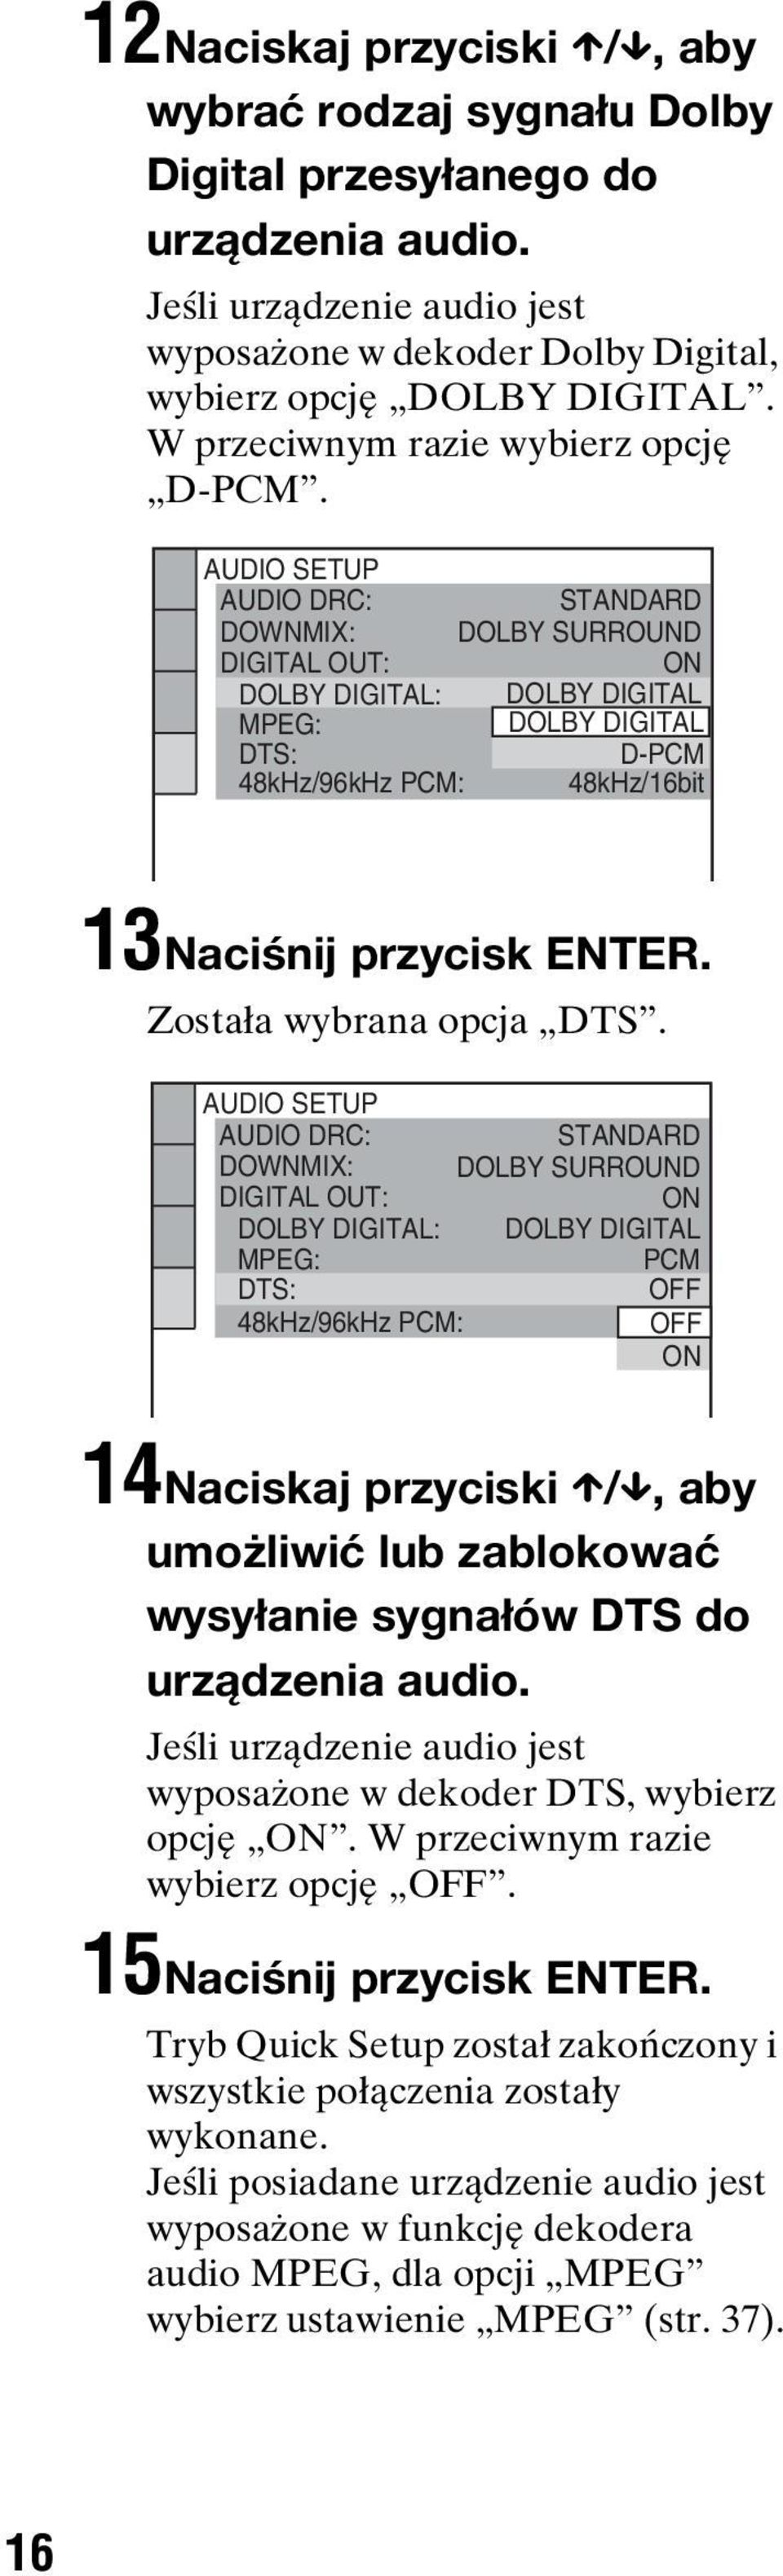 AUDIO SETUP AUDIO DRC: DOWNMIX: STANDARD DOLBY SURROUND DIGITAL OUT: DOLBY DIGITAL: ON DOLBY DIGITAL MPEG: DOLBY DIGITAL DTS: D-PCM 48kHz/96kHz PCM: 48kHz/16it 13Naciśnij przycisk ENTER.